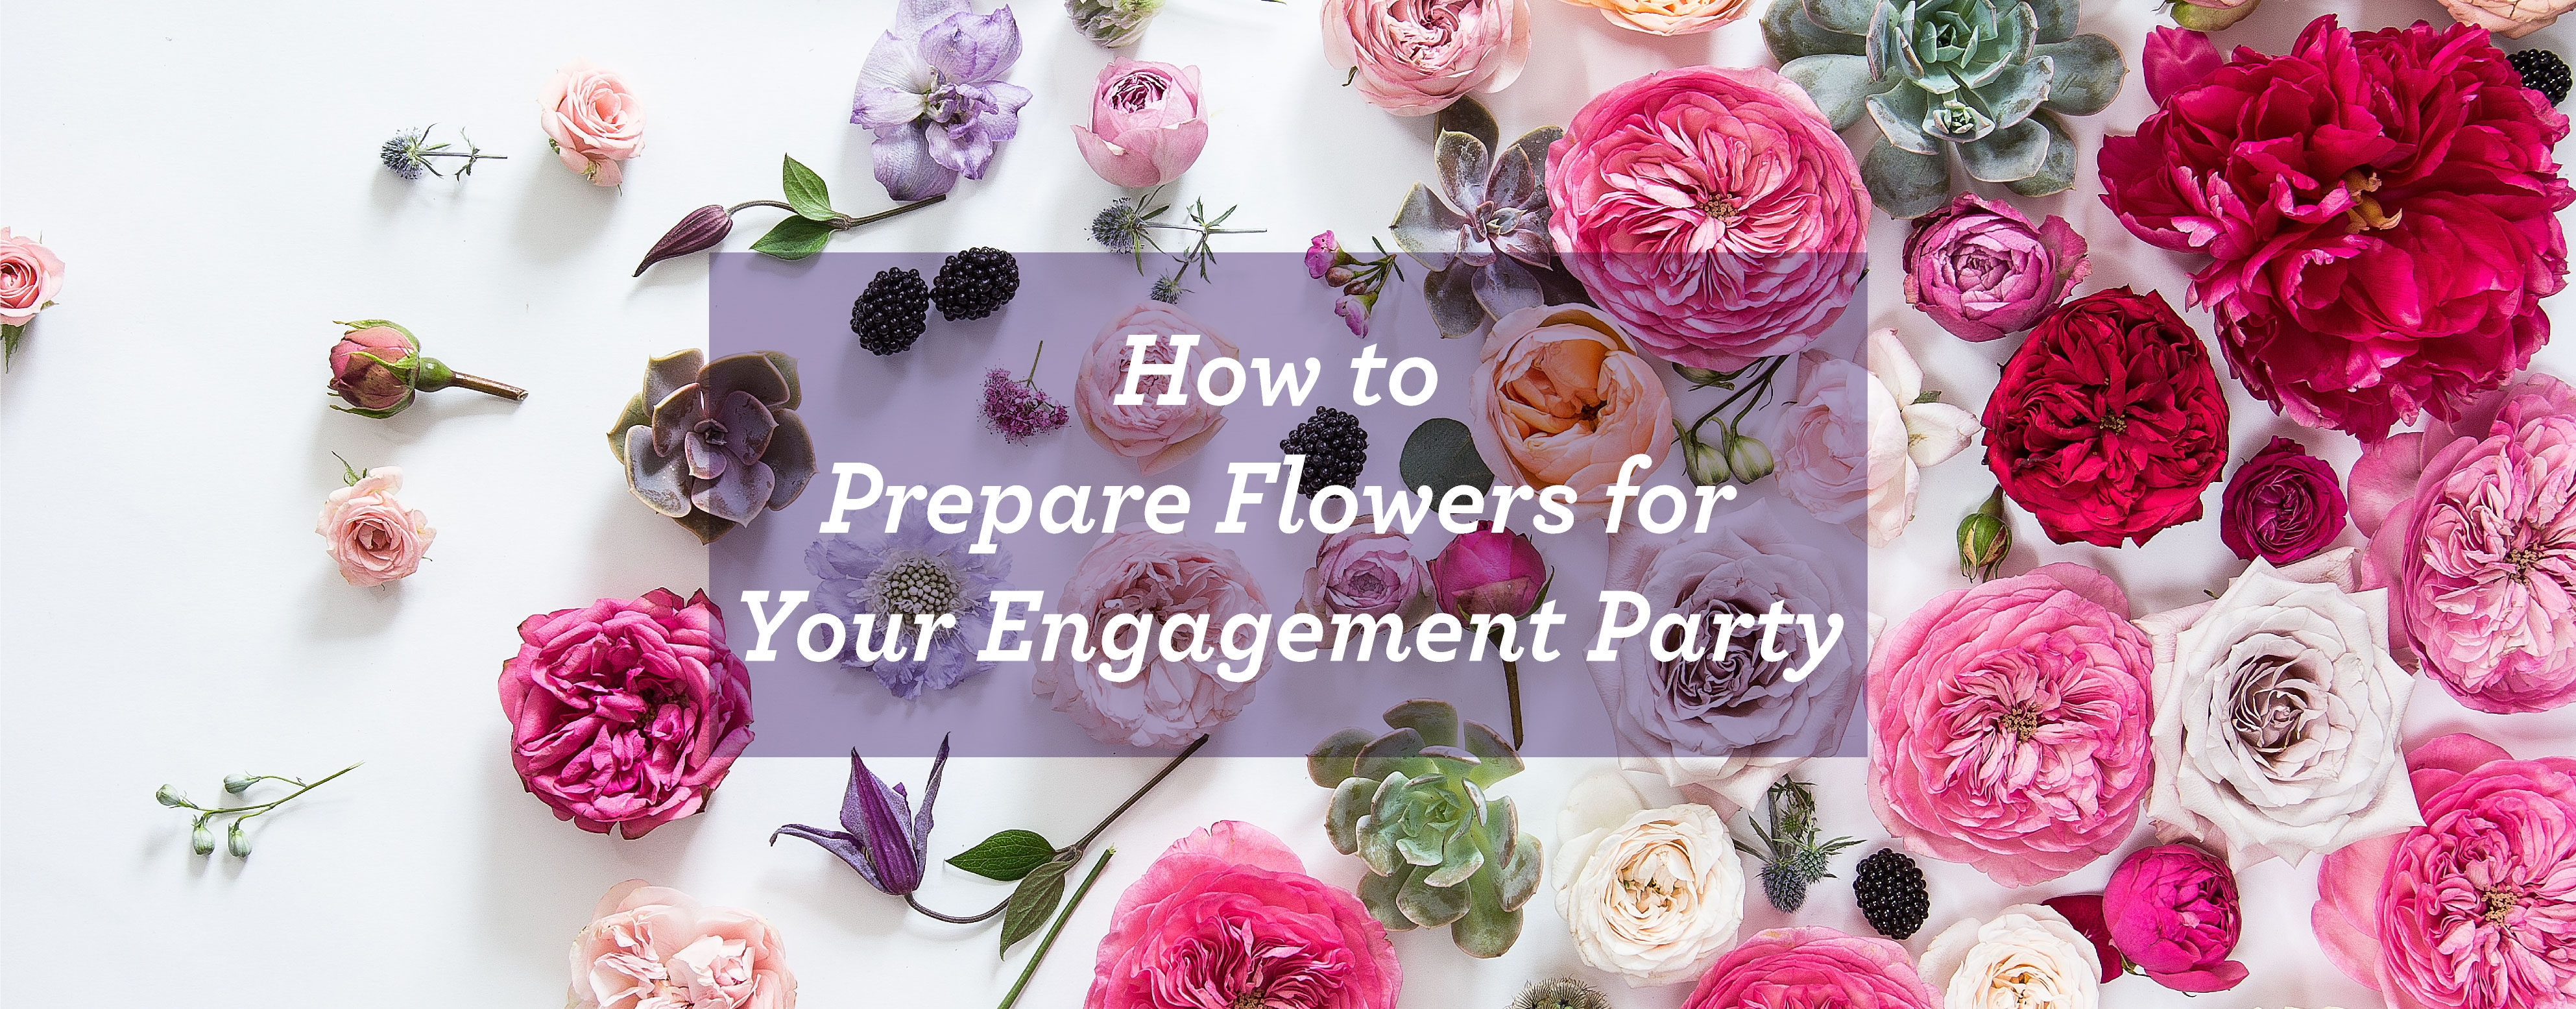 HHow to Prepare Flowers for Your Engagement Party